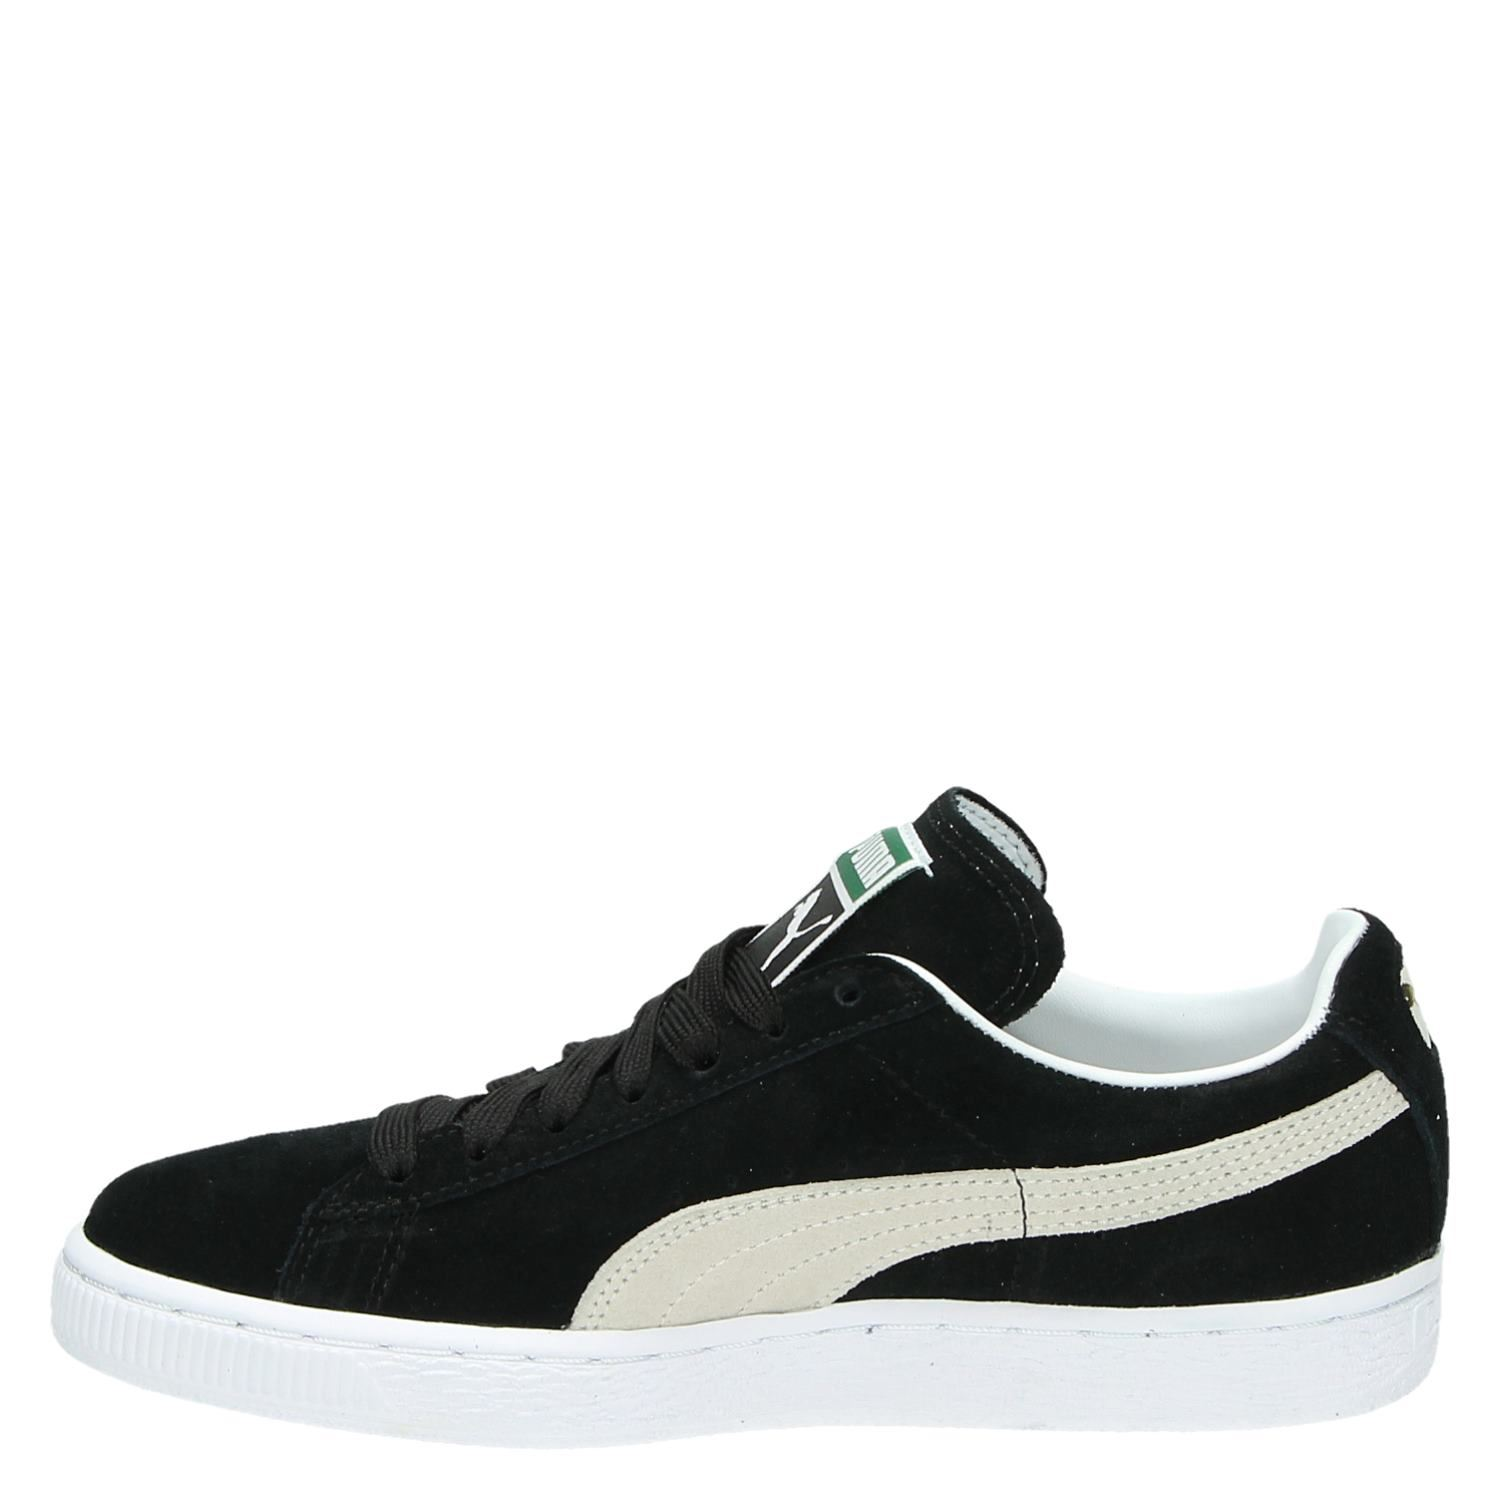 Sneakers Heren Puma Dames Lage Sneakers Zwart